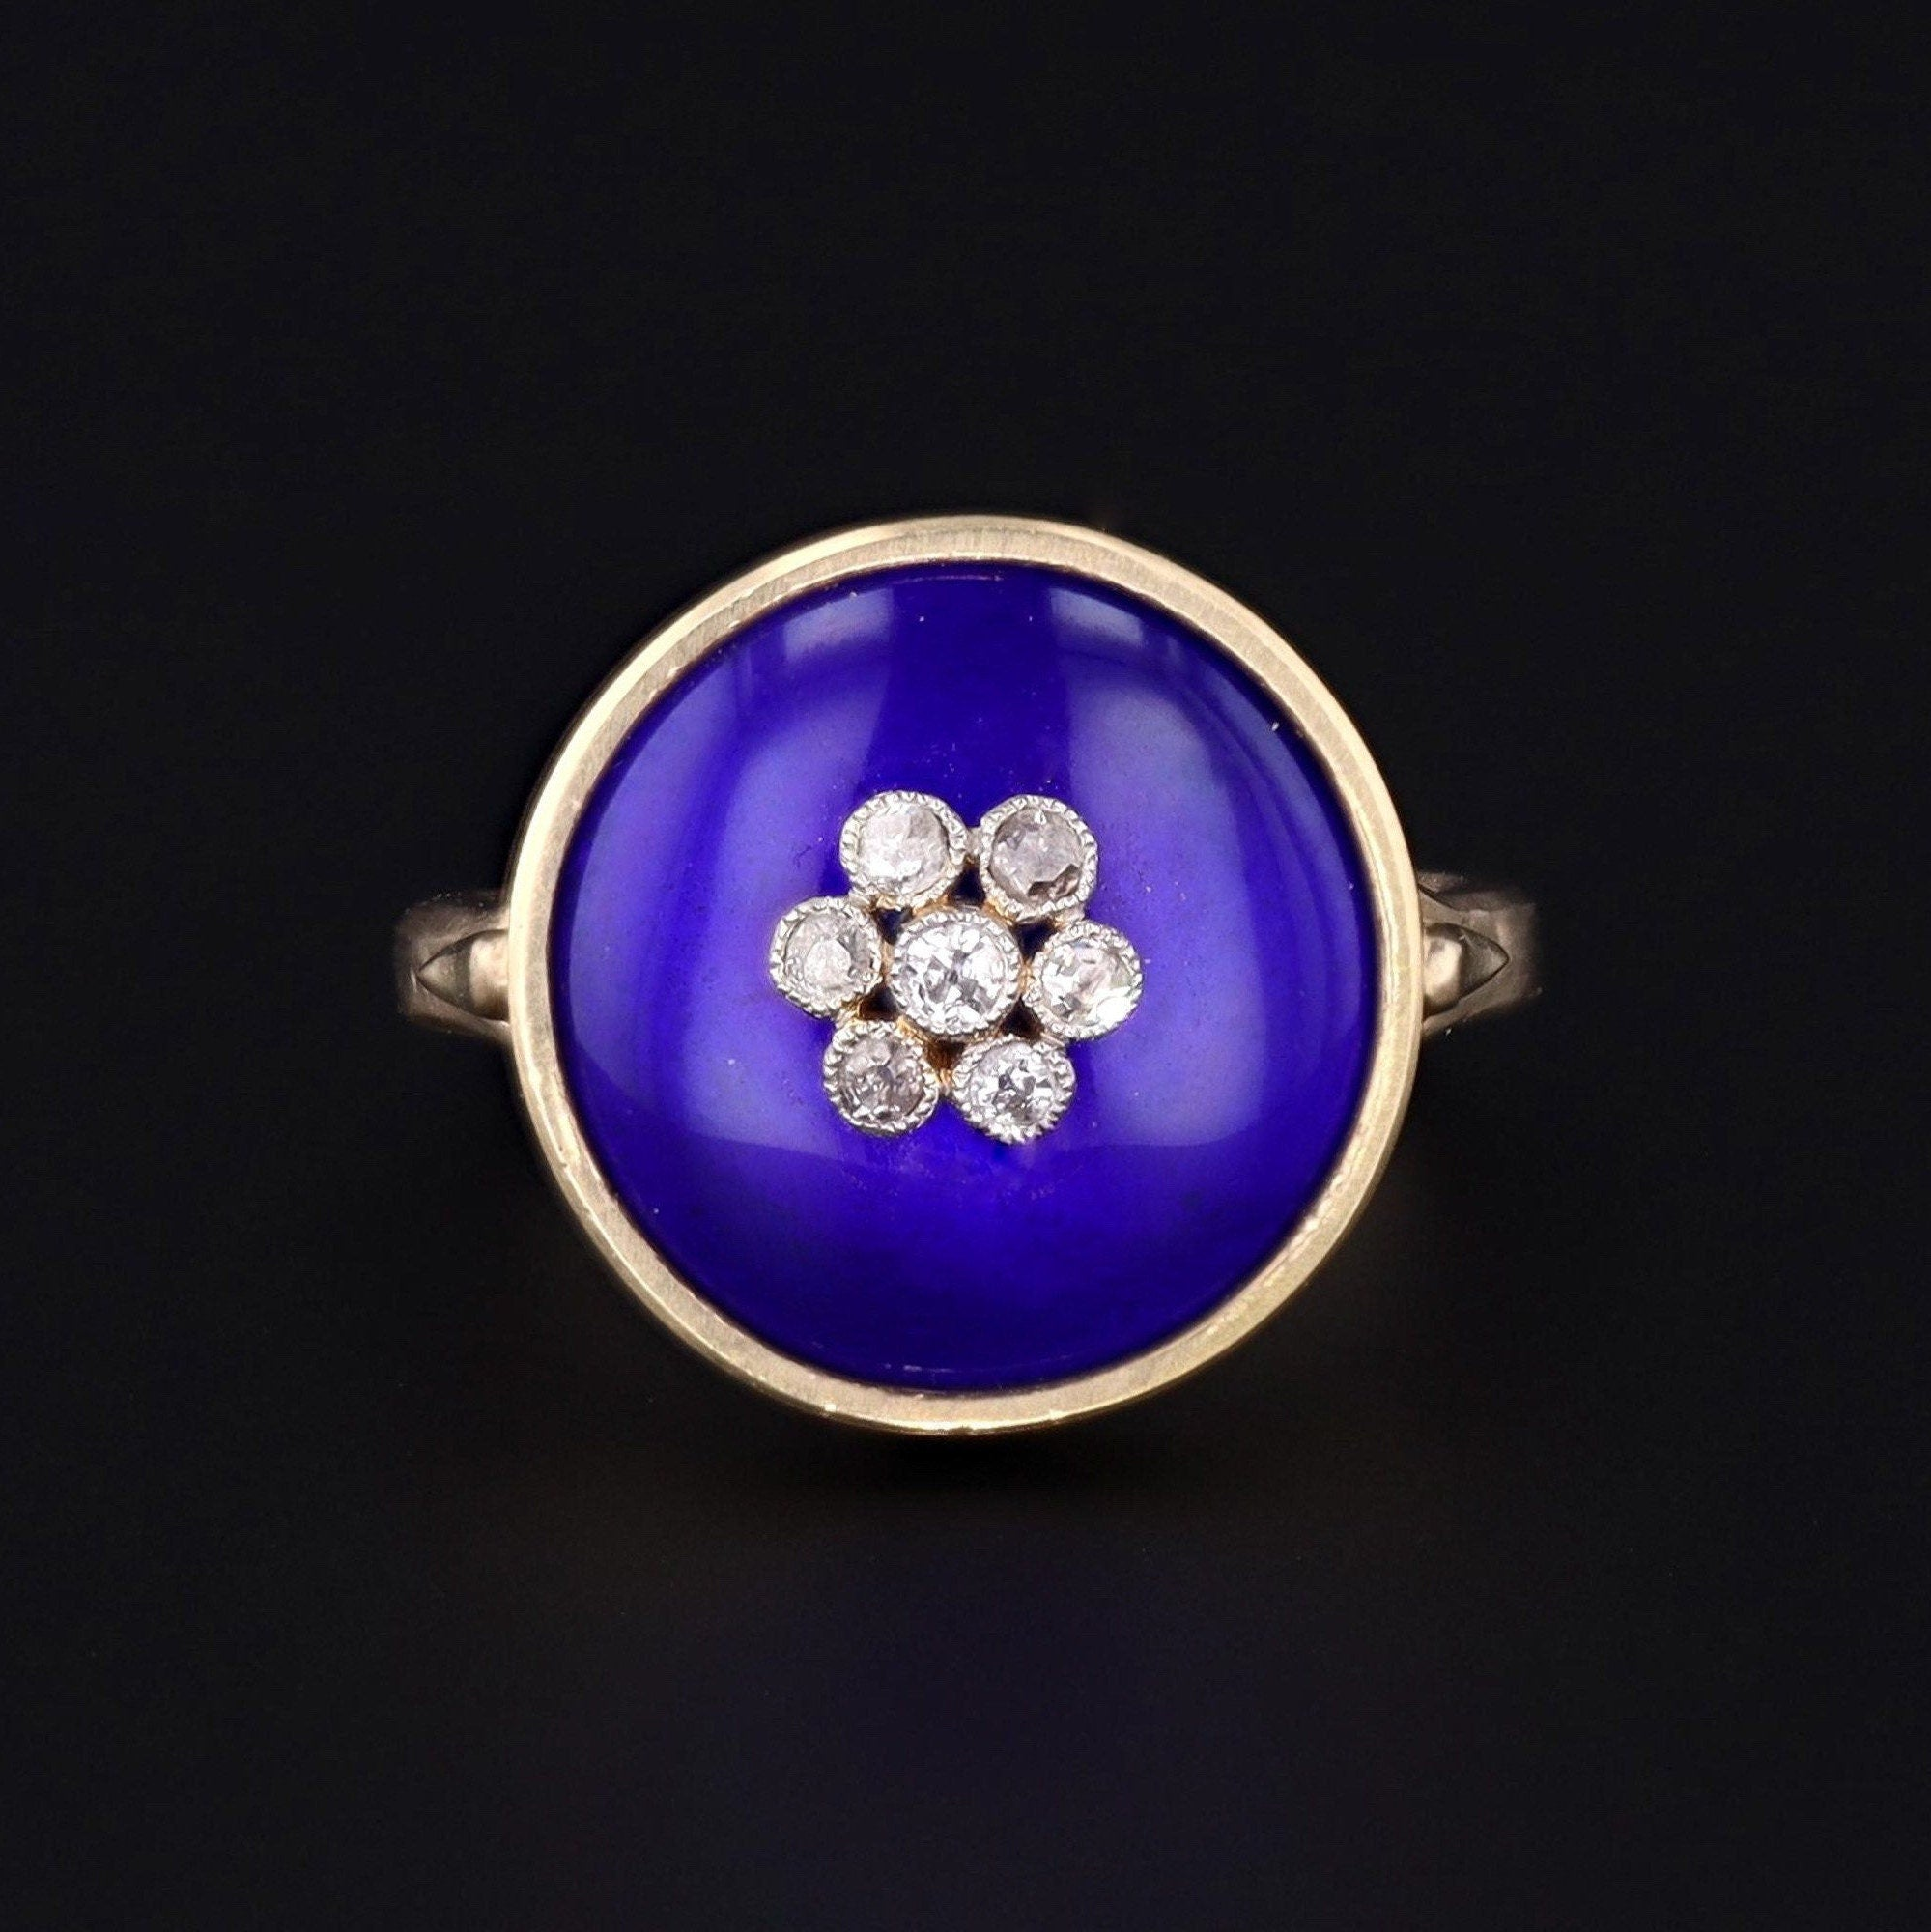 Cobalt Blue Enamel & Diamond Ring | Antique Pin Conversion Ring | 14k Gold Ring | Flower Ring